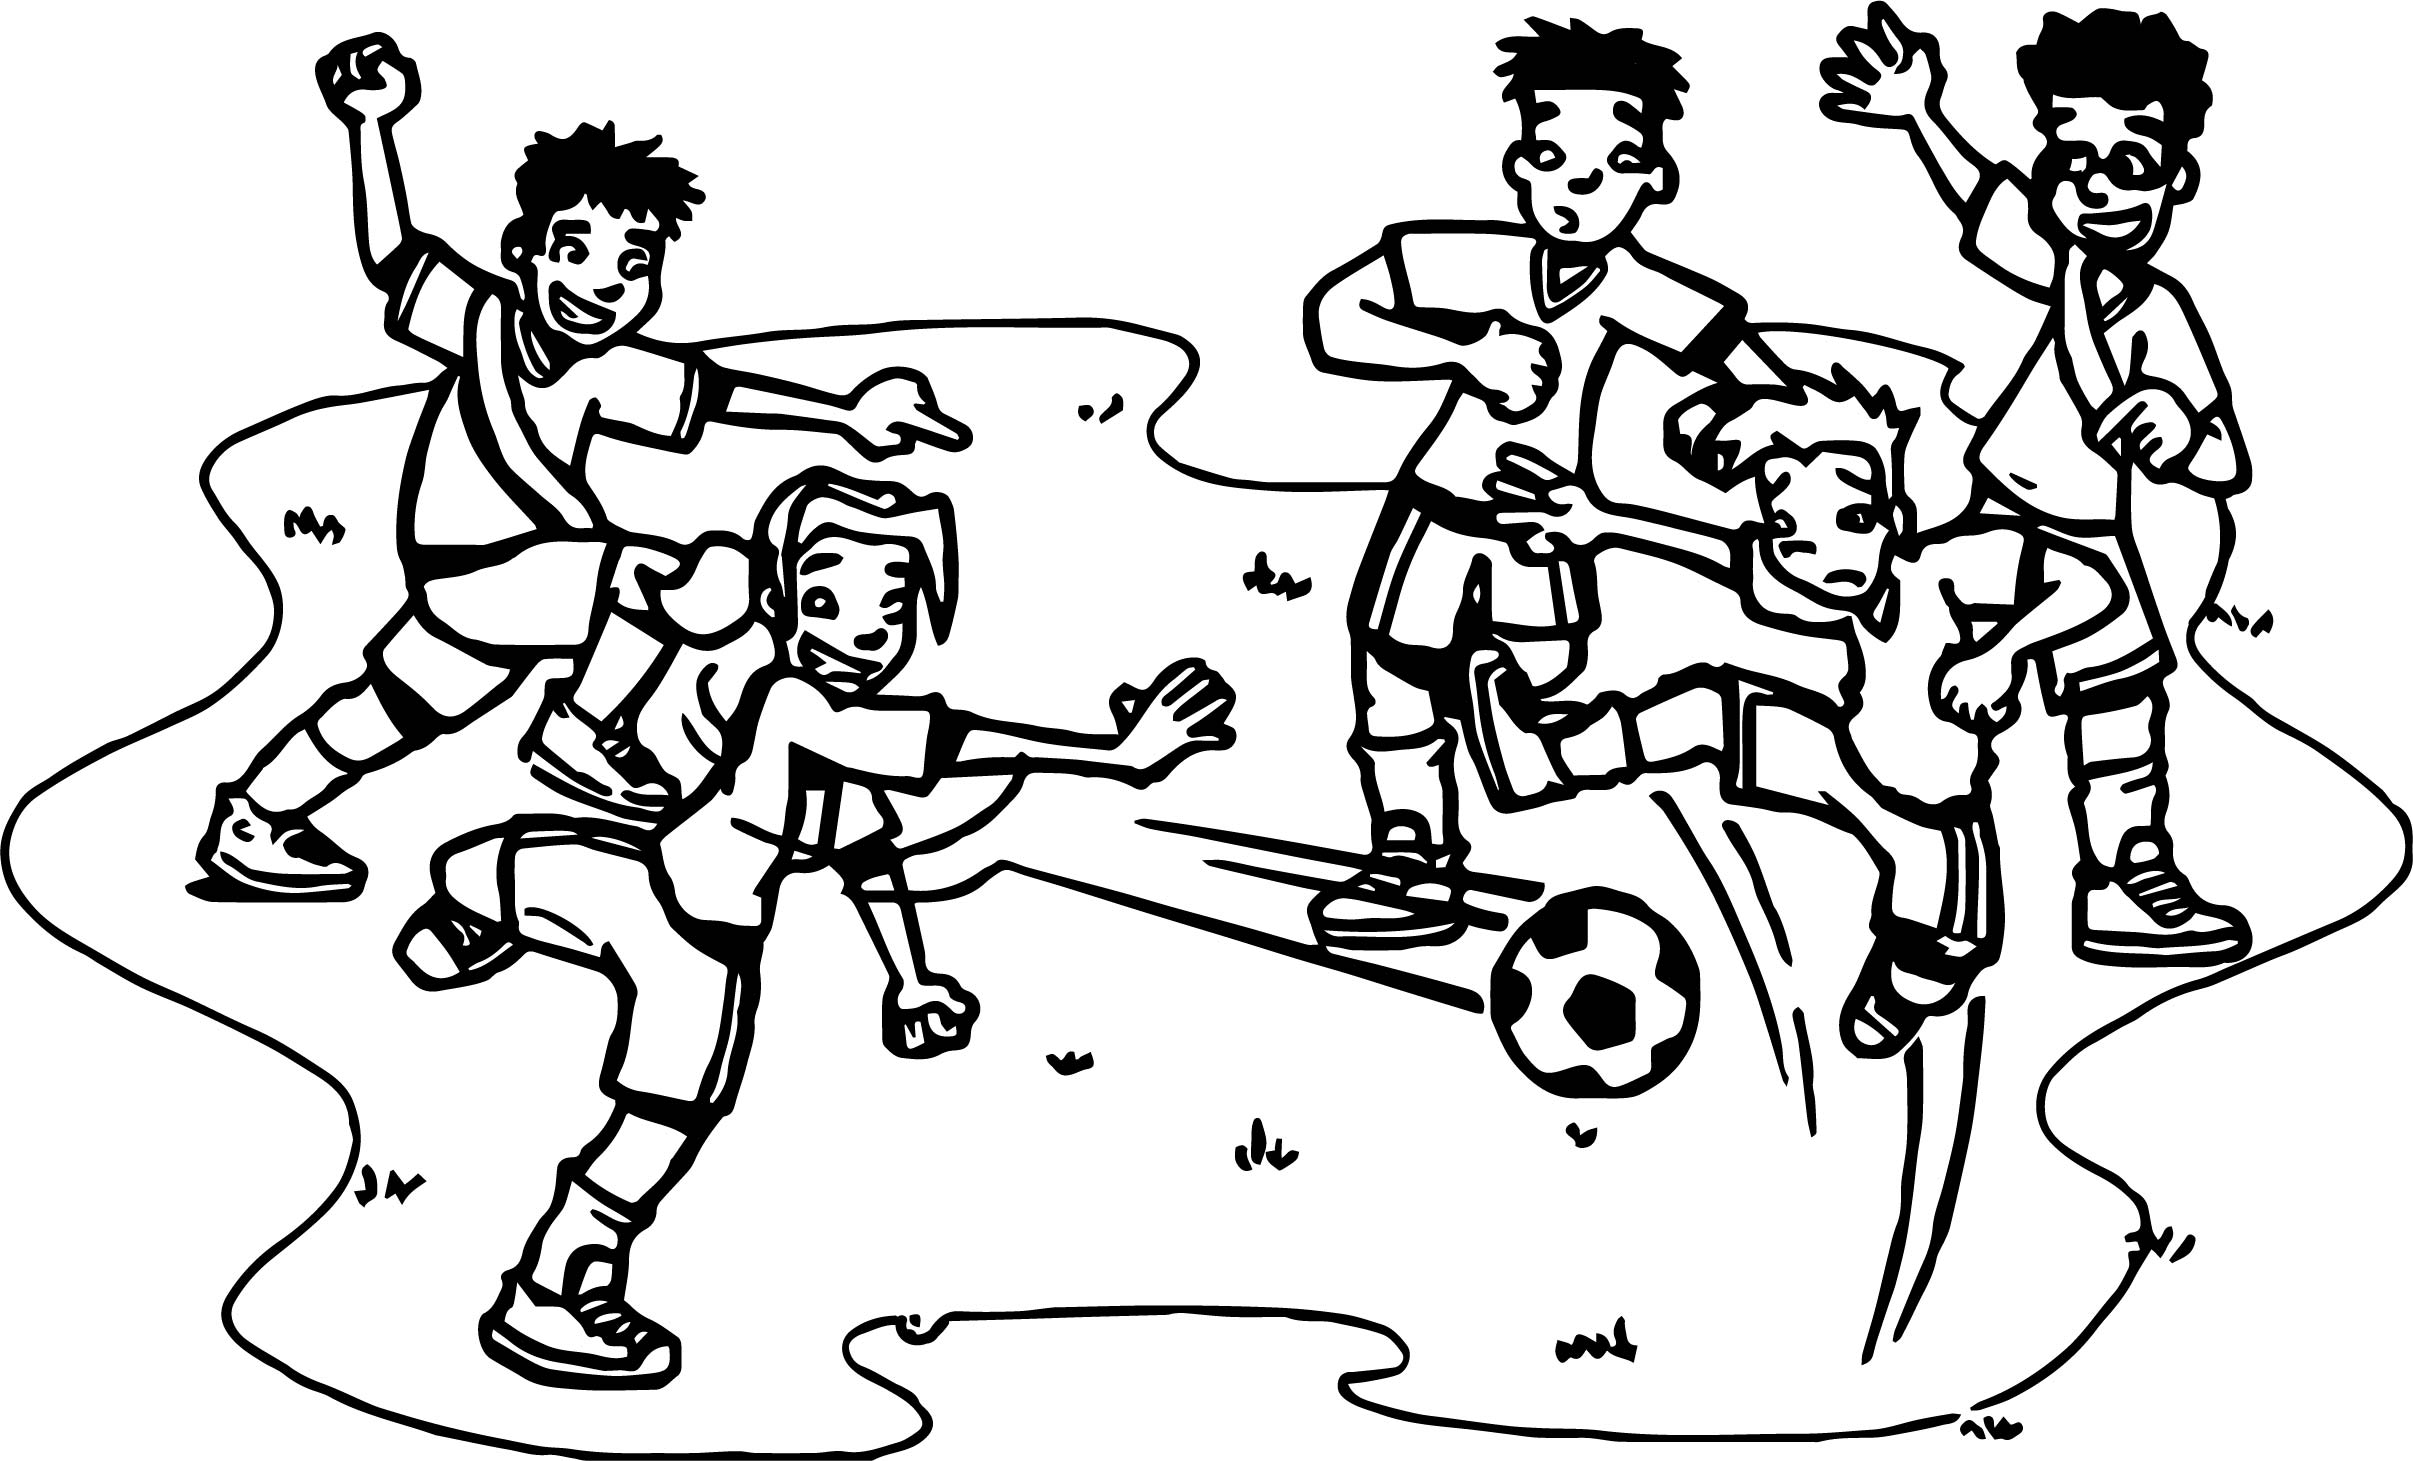 Football Player Playing Street Soccer Coloring Page | Wecoloringpage